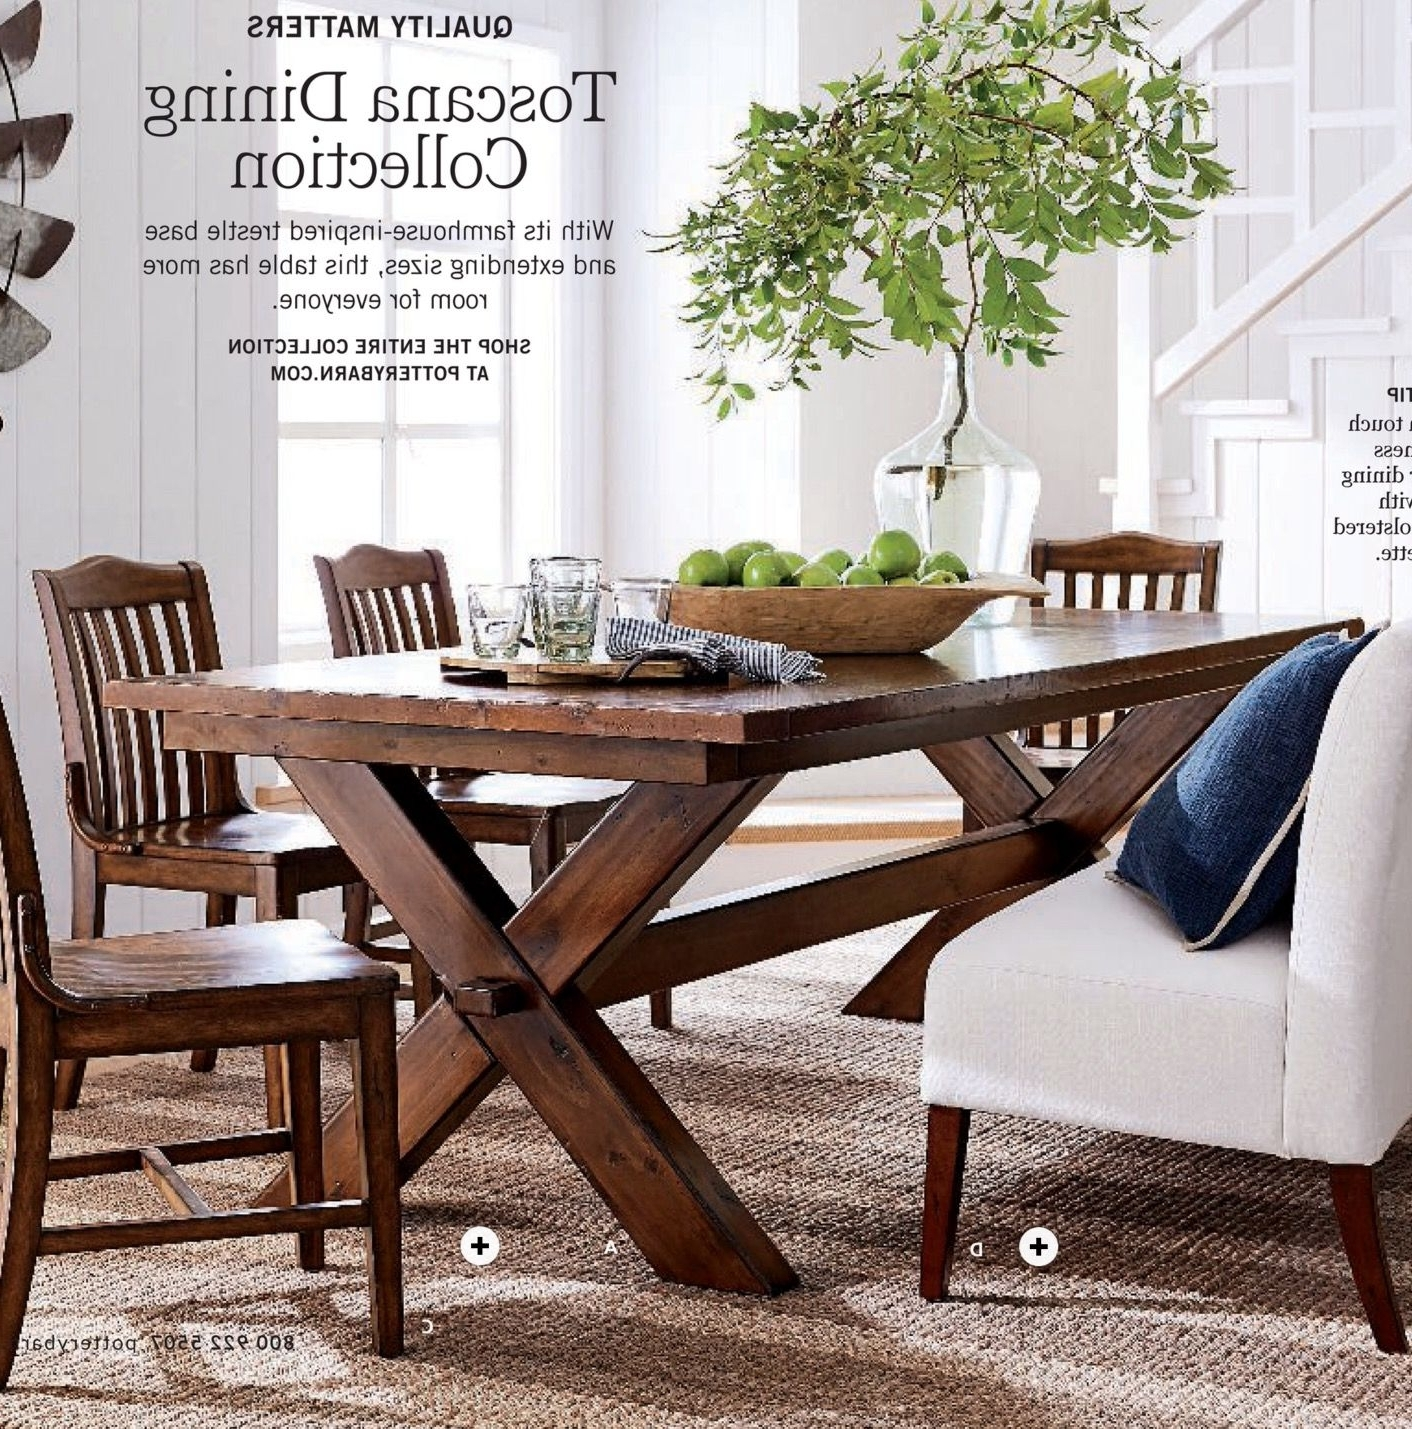 Popular Toscano Dining Table, Stella Dining Chairs, Barrett Glass Globe Regarding Toscana Dining Tables (View 7 of 25)